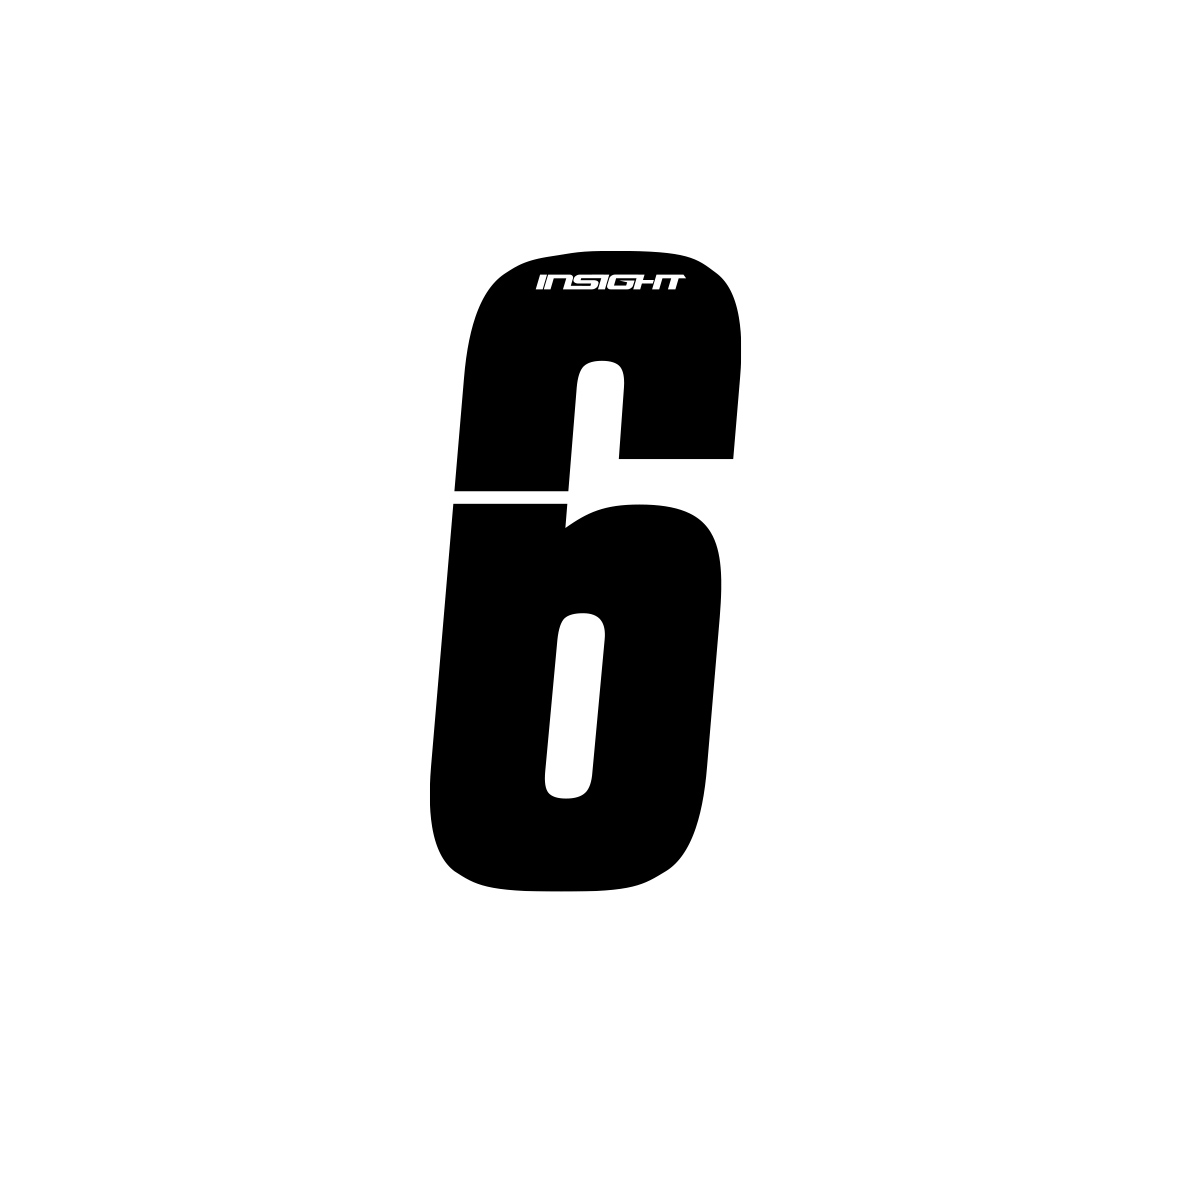 SIDE PLATE NUMBERS INSIGHT BLACK 3""